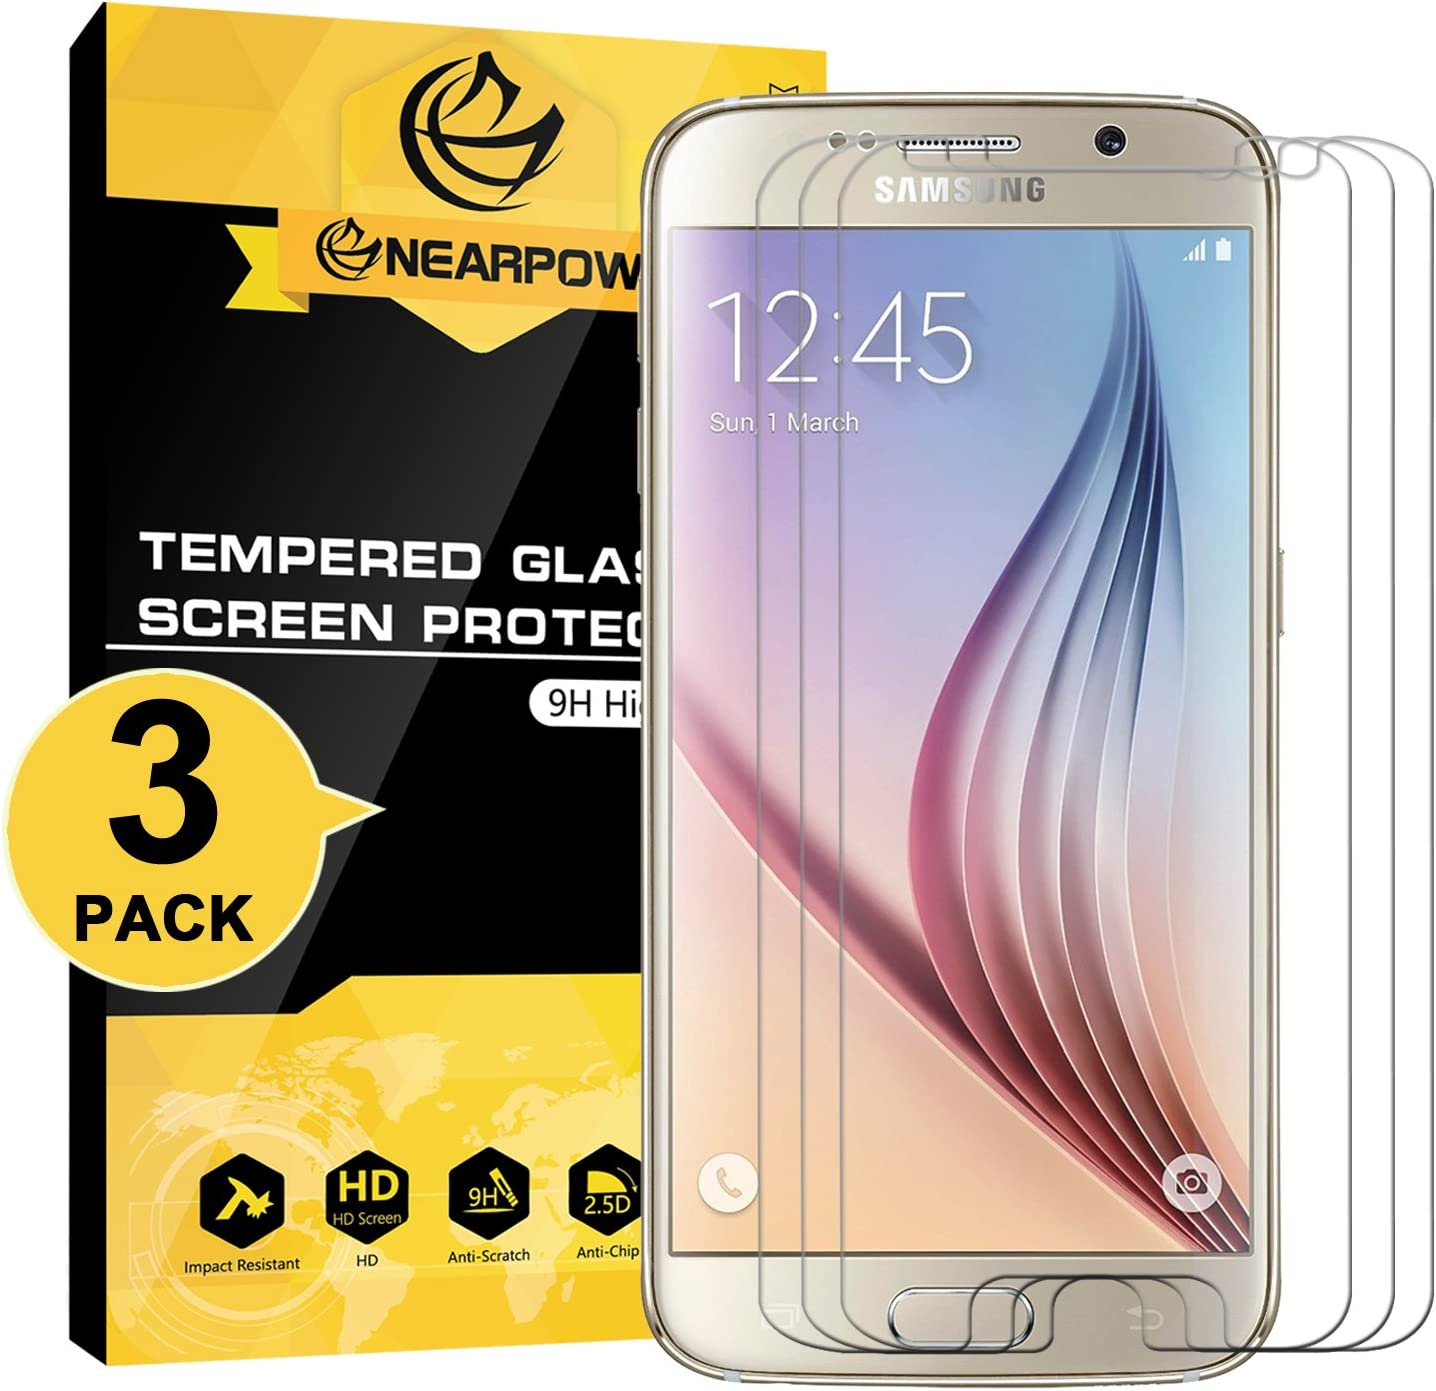 Shatterproof Tempered Glass Film Scratch-Resistant Screen Protector for Sony Xperia X Conber Screen Protector for Sony Xperia X 2 Pack Case Friendly